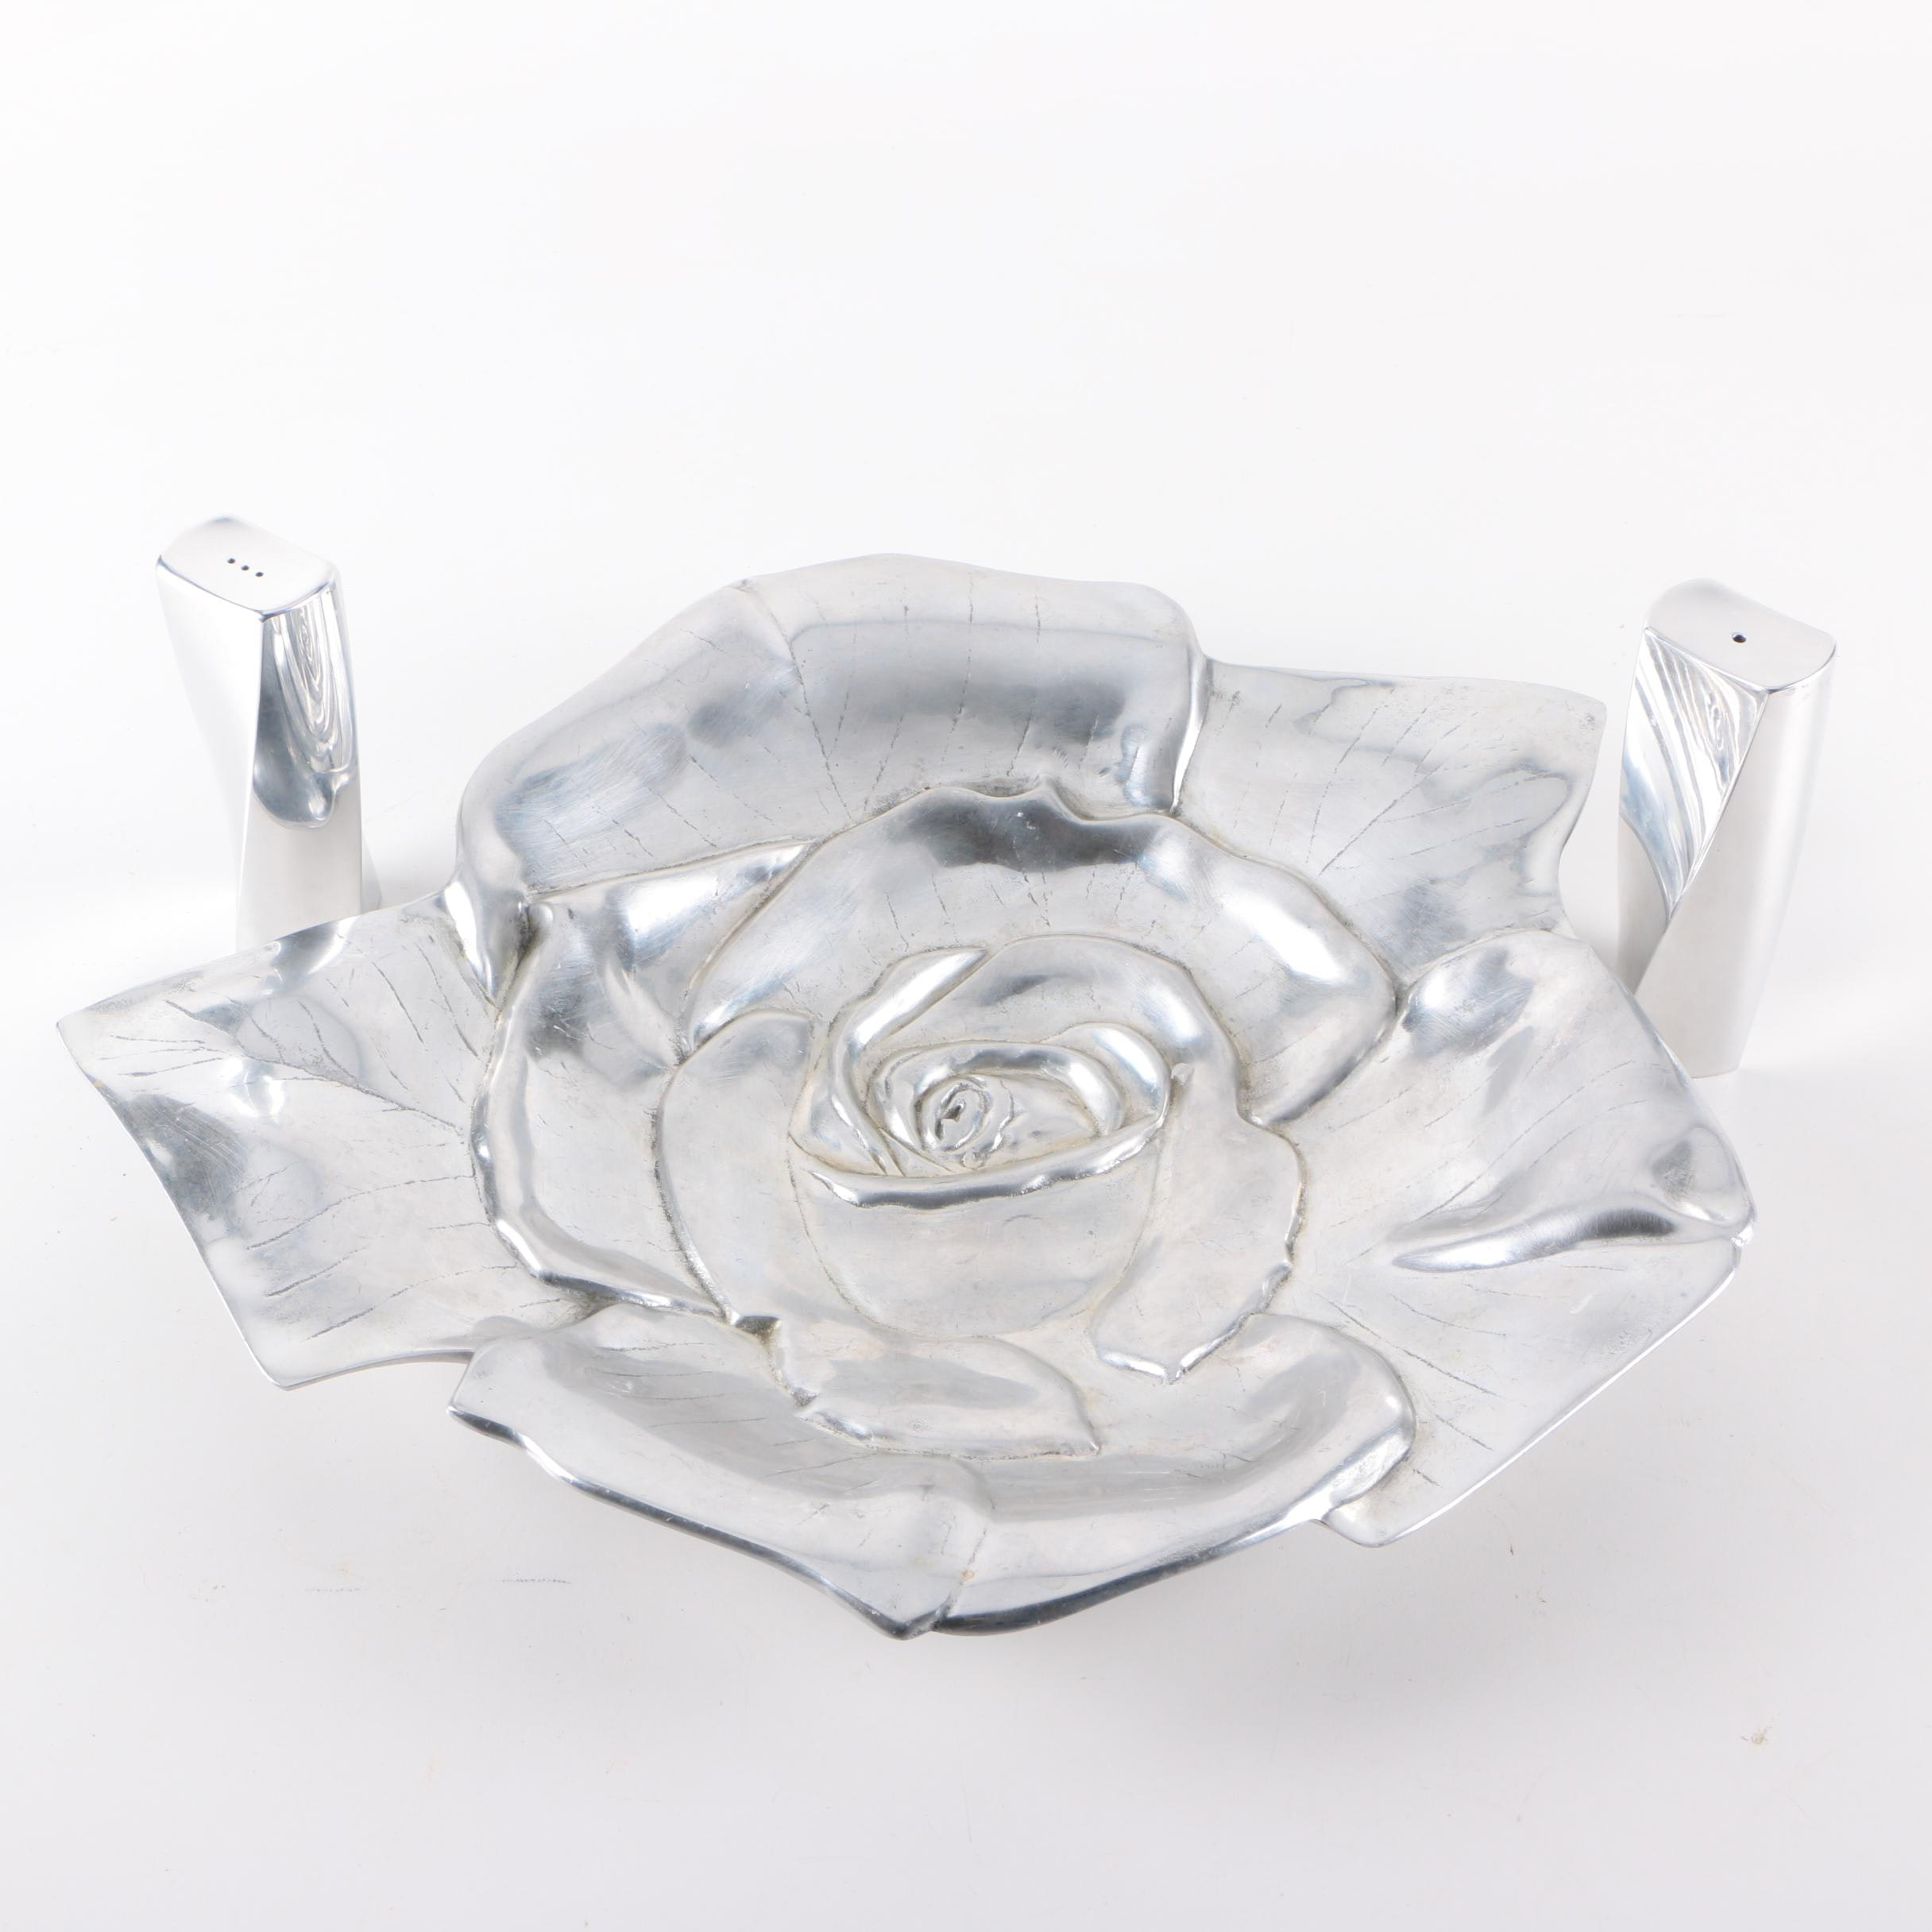 Alum Creations Rose Serving Platter and Nambe Salt and Pepper Shakers